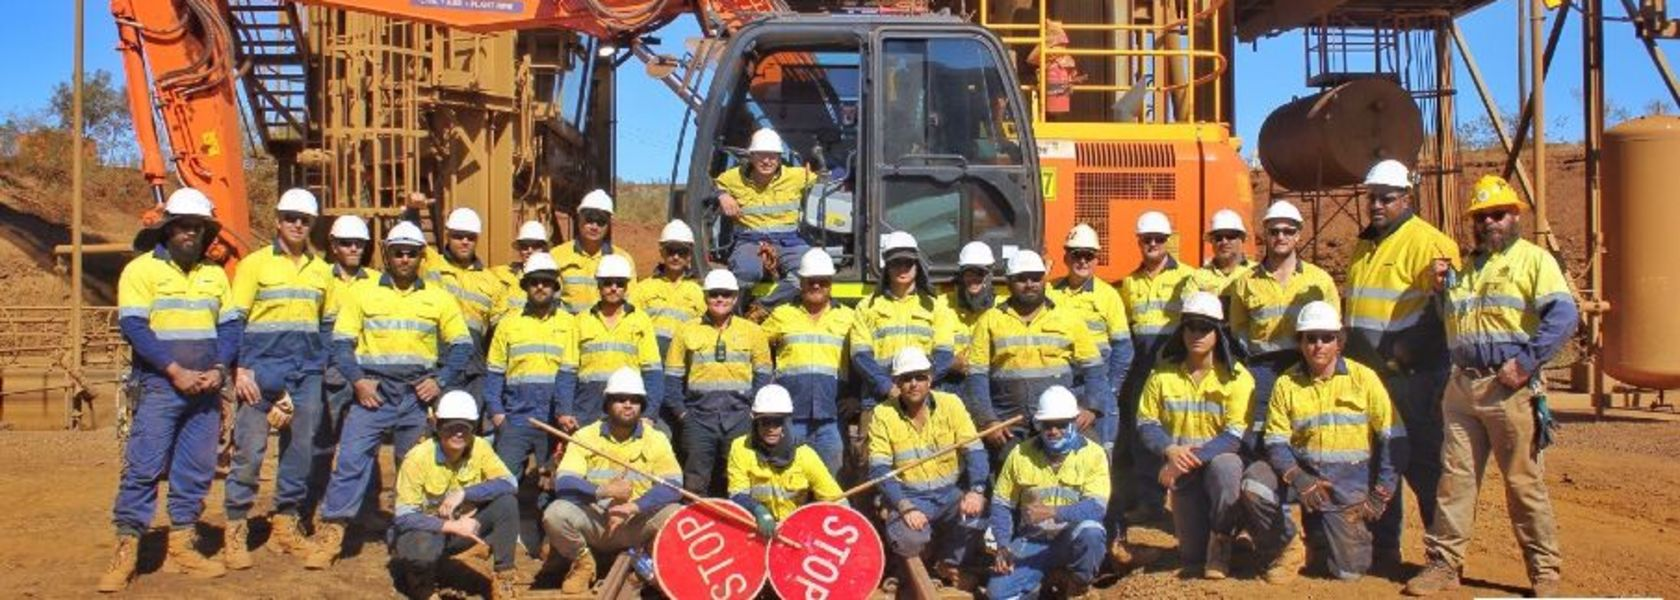 Downer bags new Rio Tinto contract